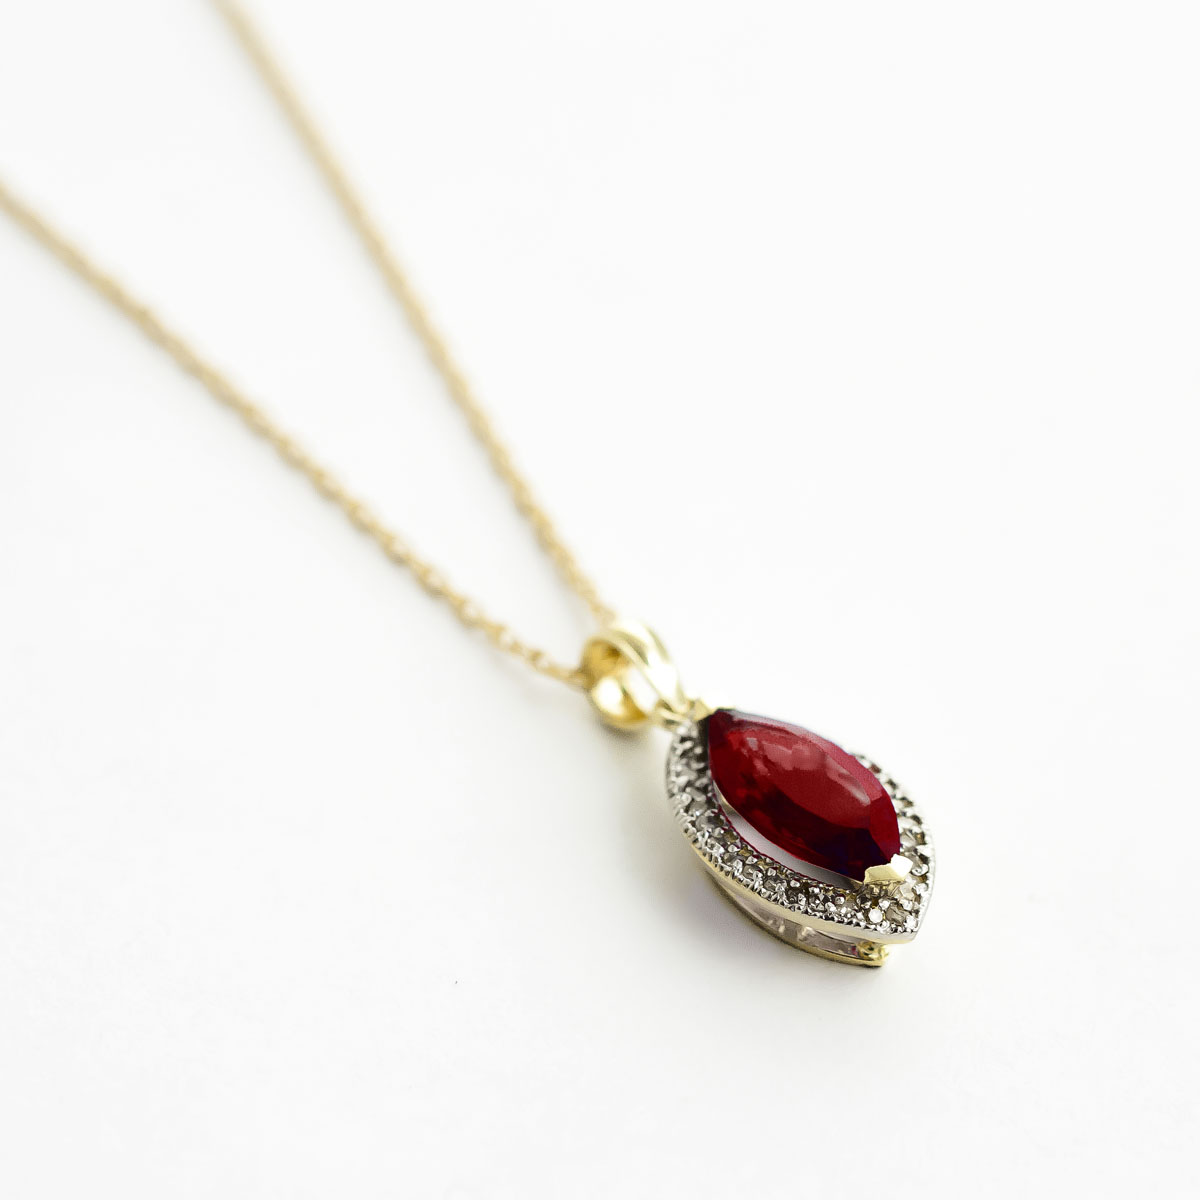 Garnet Halo Pendant Necklace 2.15 ctw in 9ct Gold